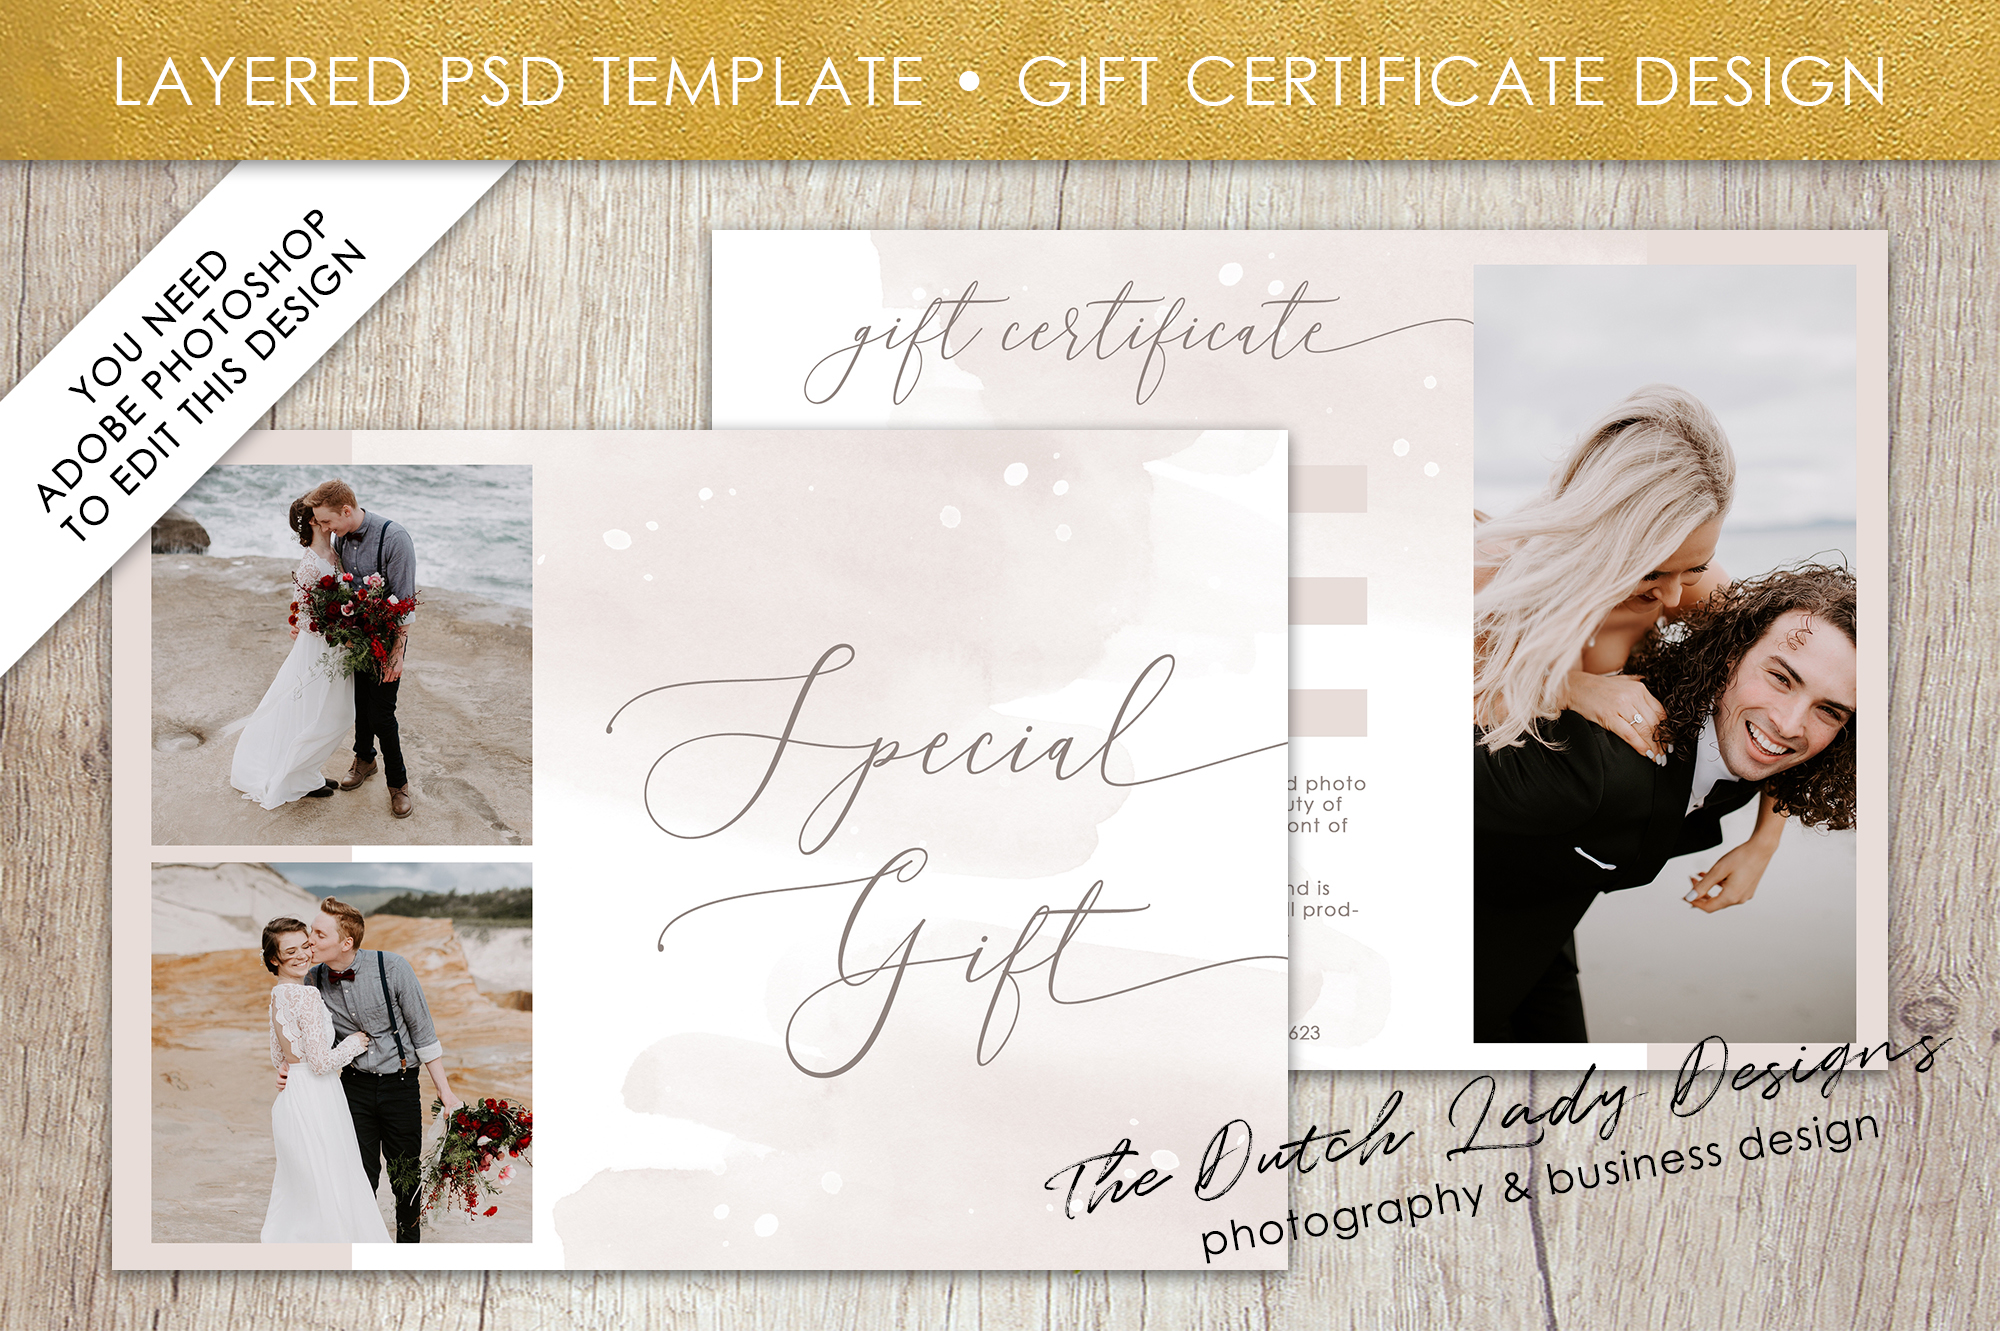 photo gift card template for adobe photoshop layered psd template design 47 example